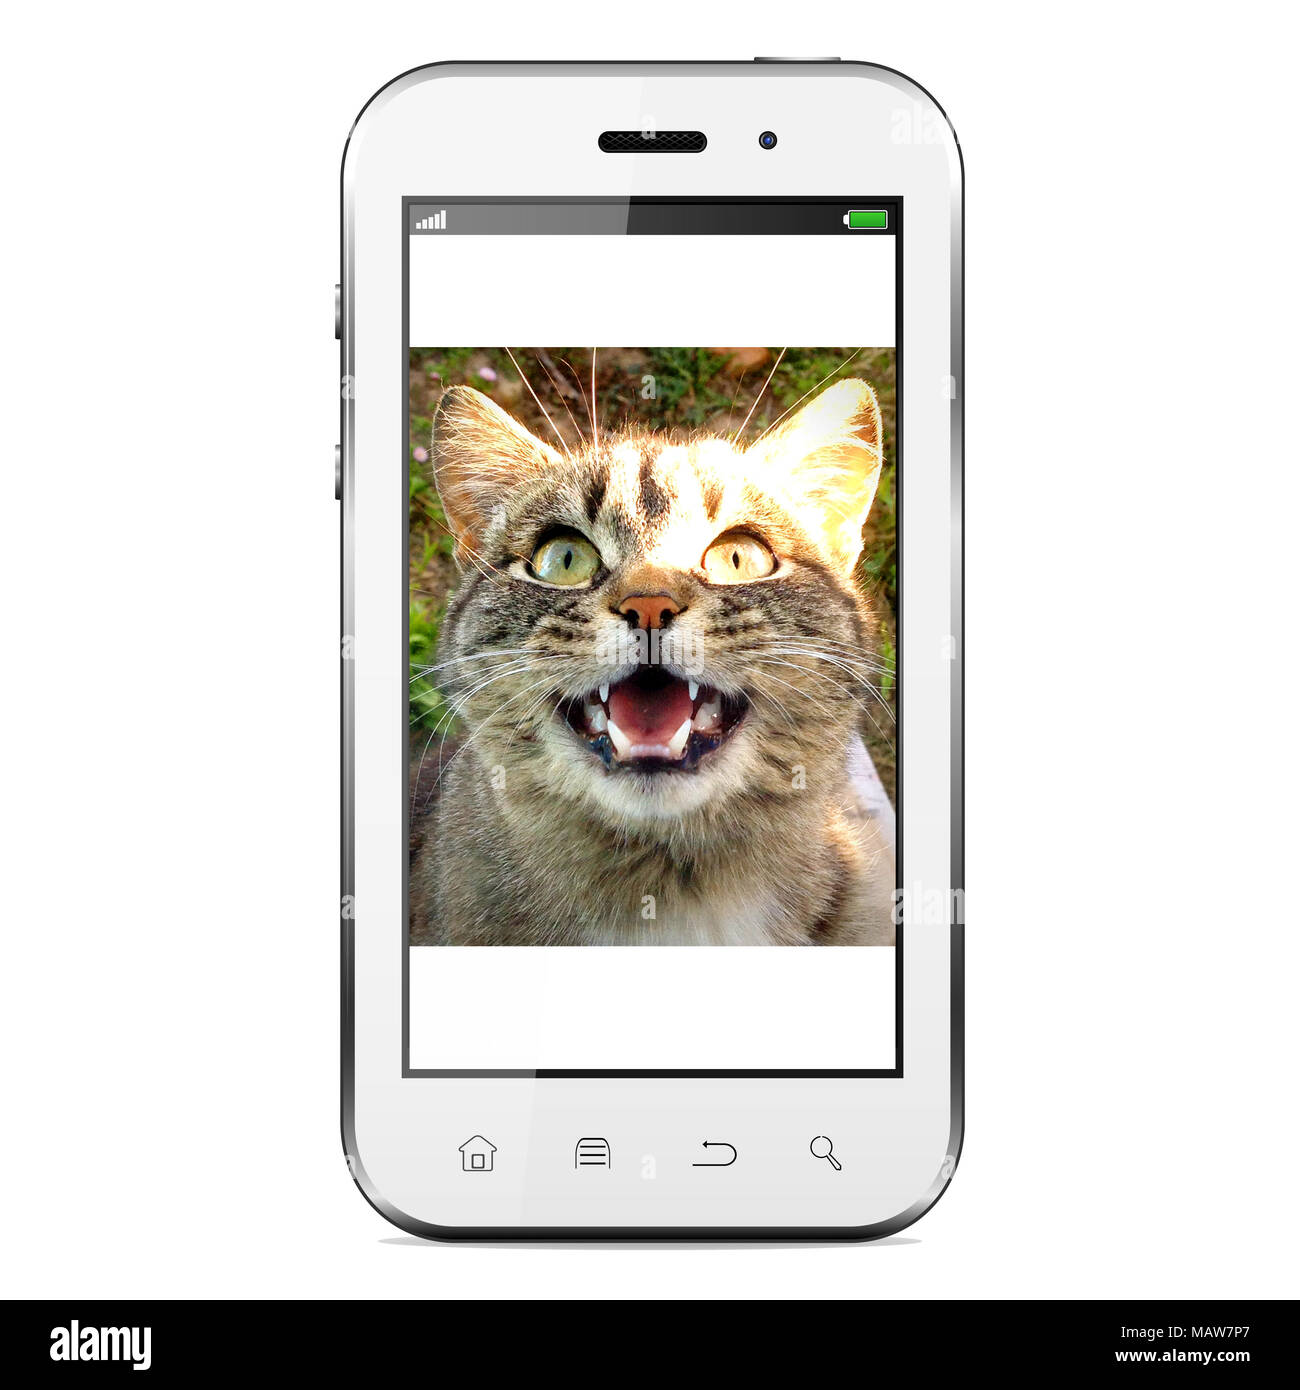 Mobile phone with cat photo on screen. Isolated on a white background. - Stock Image